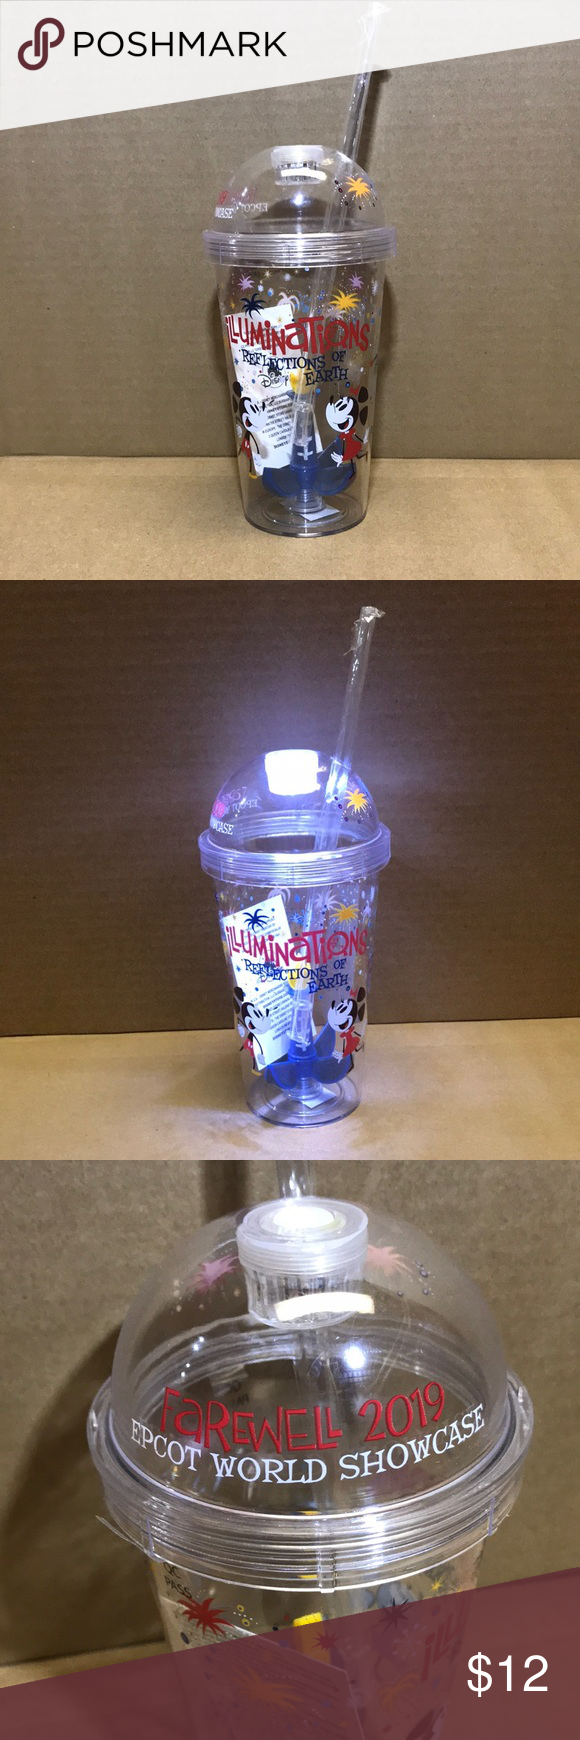 NWT, Disney world showcase tumblr, exclusive item. Disney's illuminations reflections of earth, has left the Disney Epcot park leaving us with a brand new cup to remember the great firework display. Don't miss the chance to own a piece of memorabilia, with working lights too! All packages are packed with love and sweetness. Disney Kitchen Coffee & Tea Accessories #disneykitchen